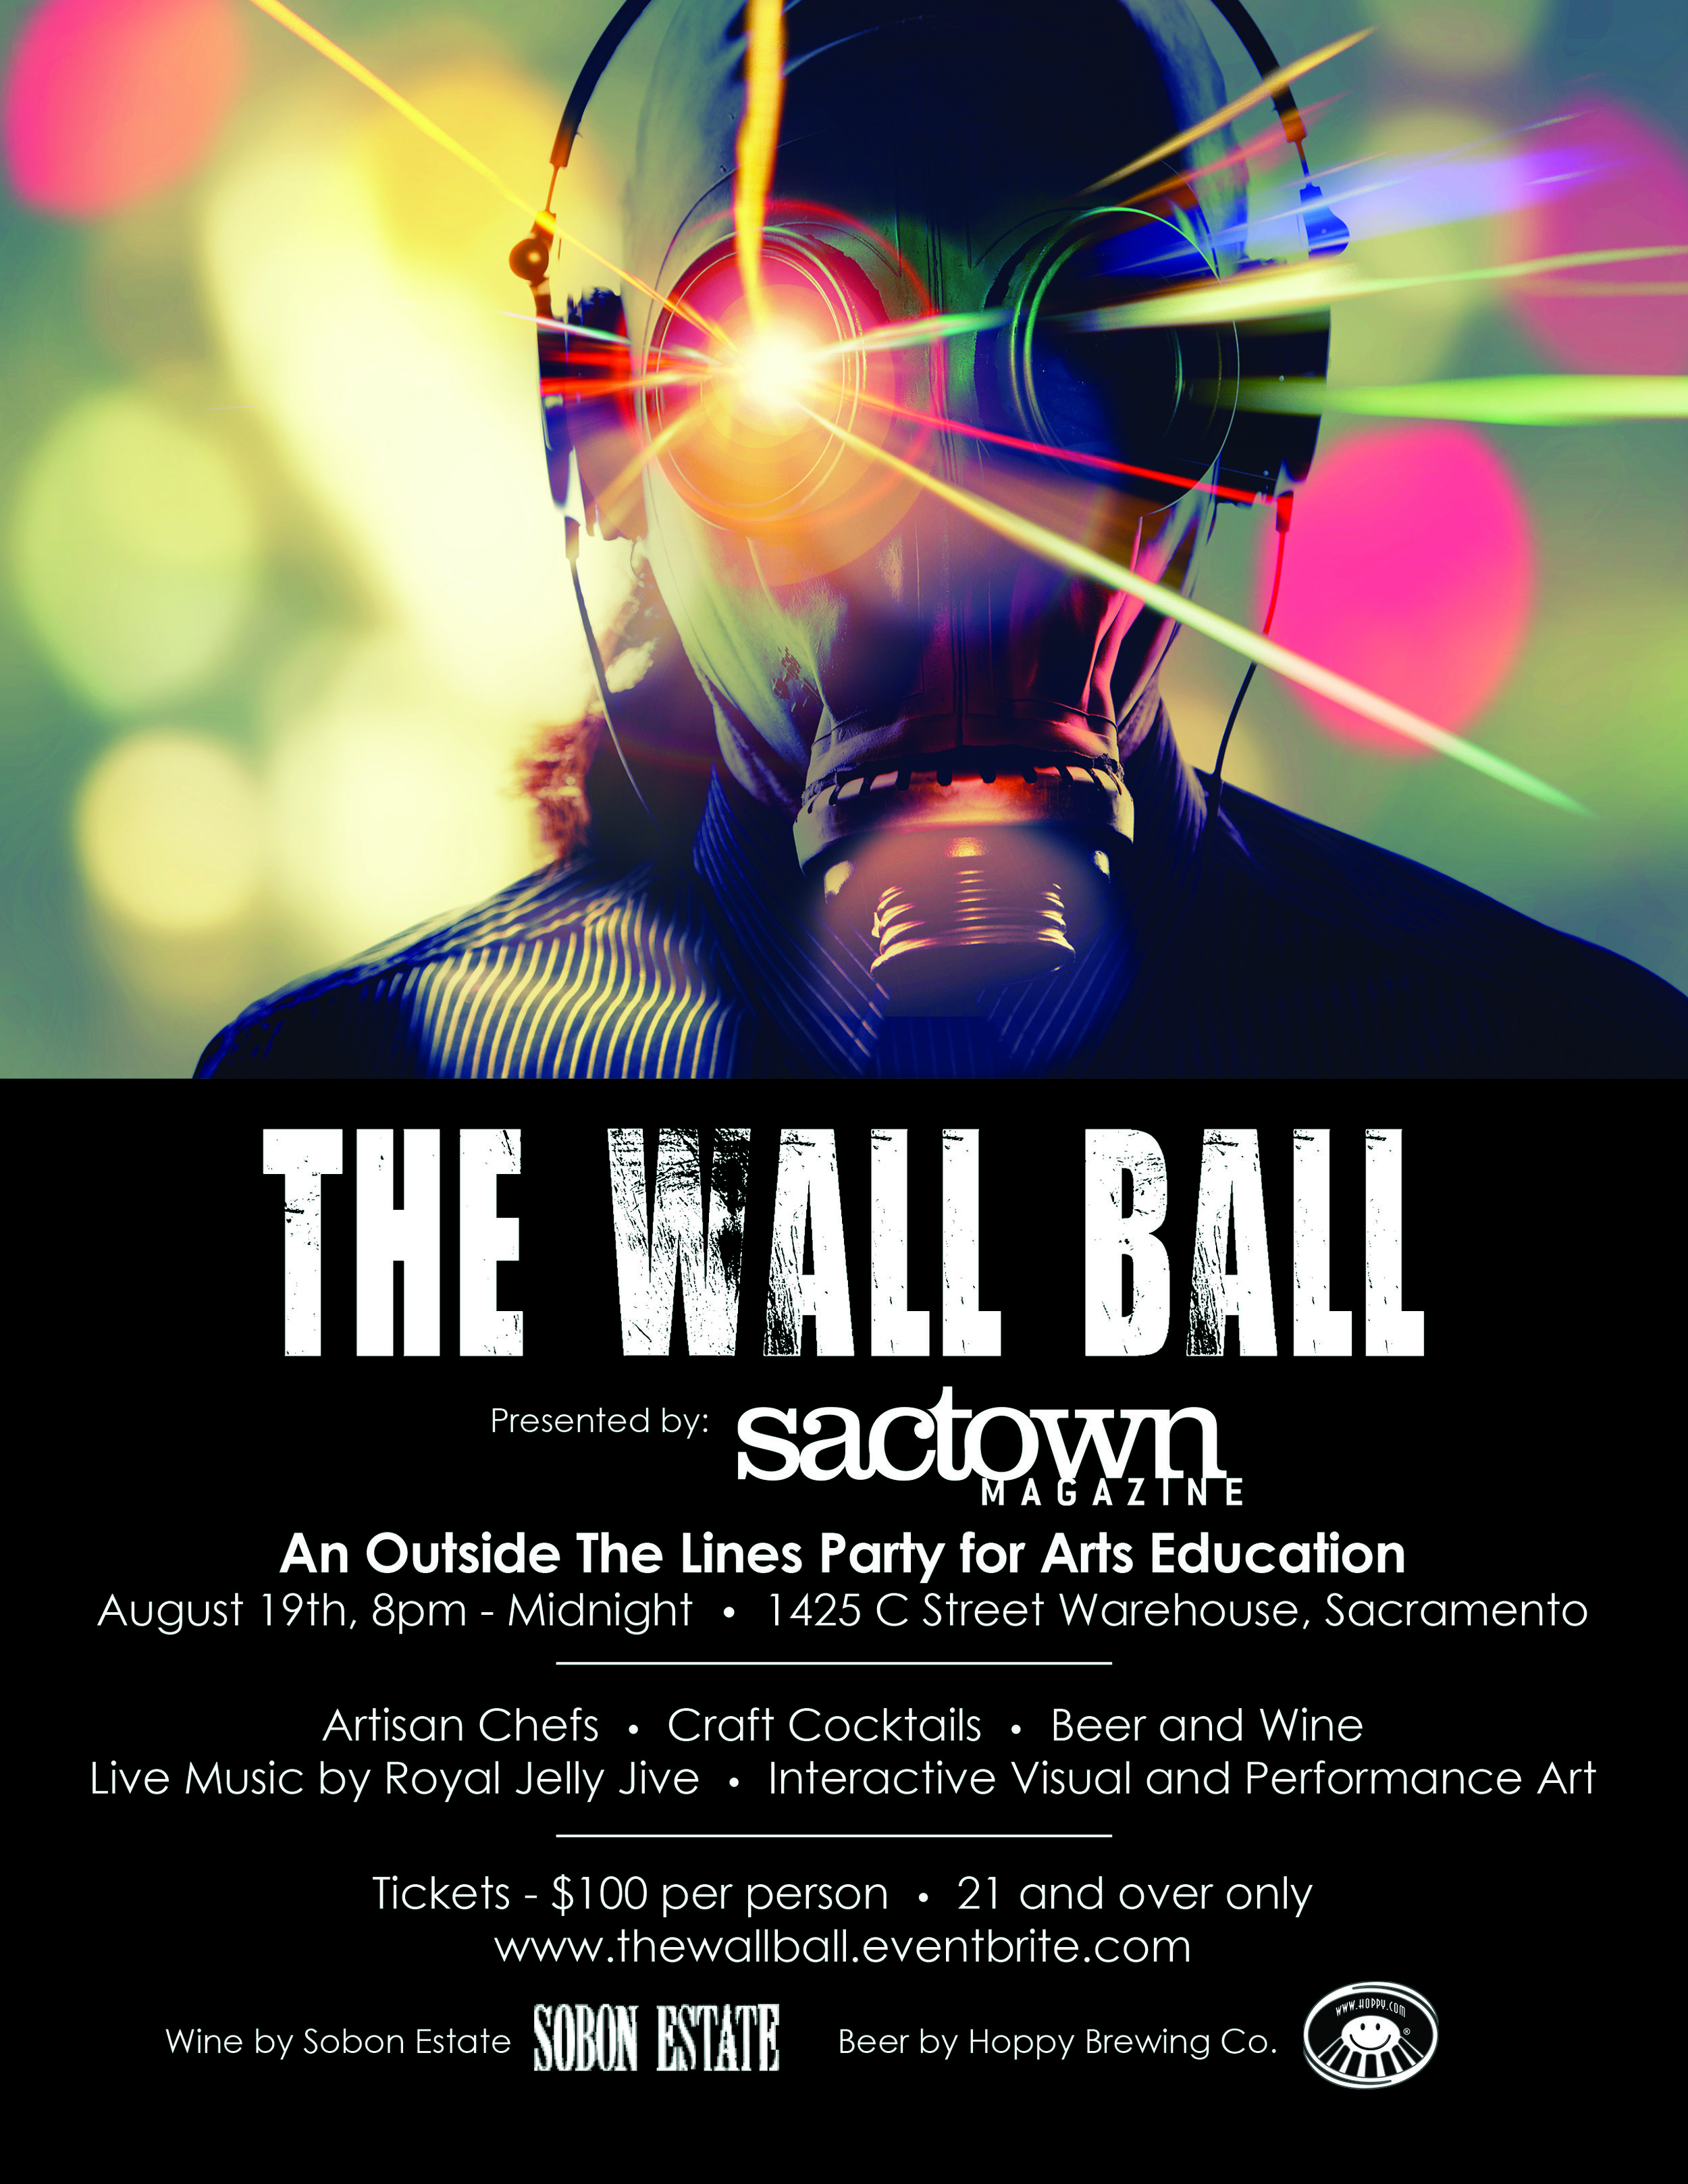 http://www.wow916.com/the-wall-ball.html